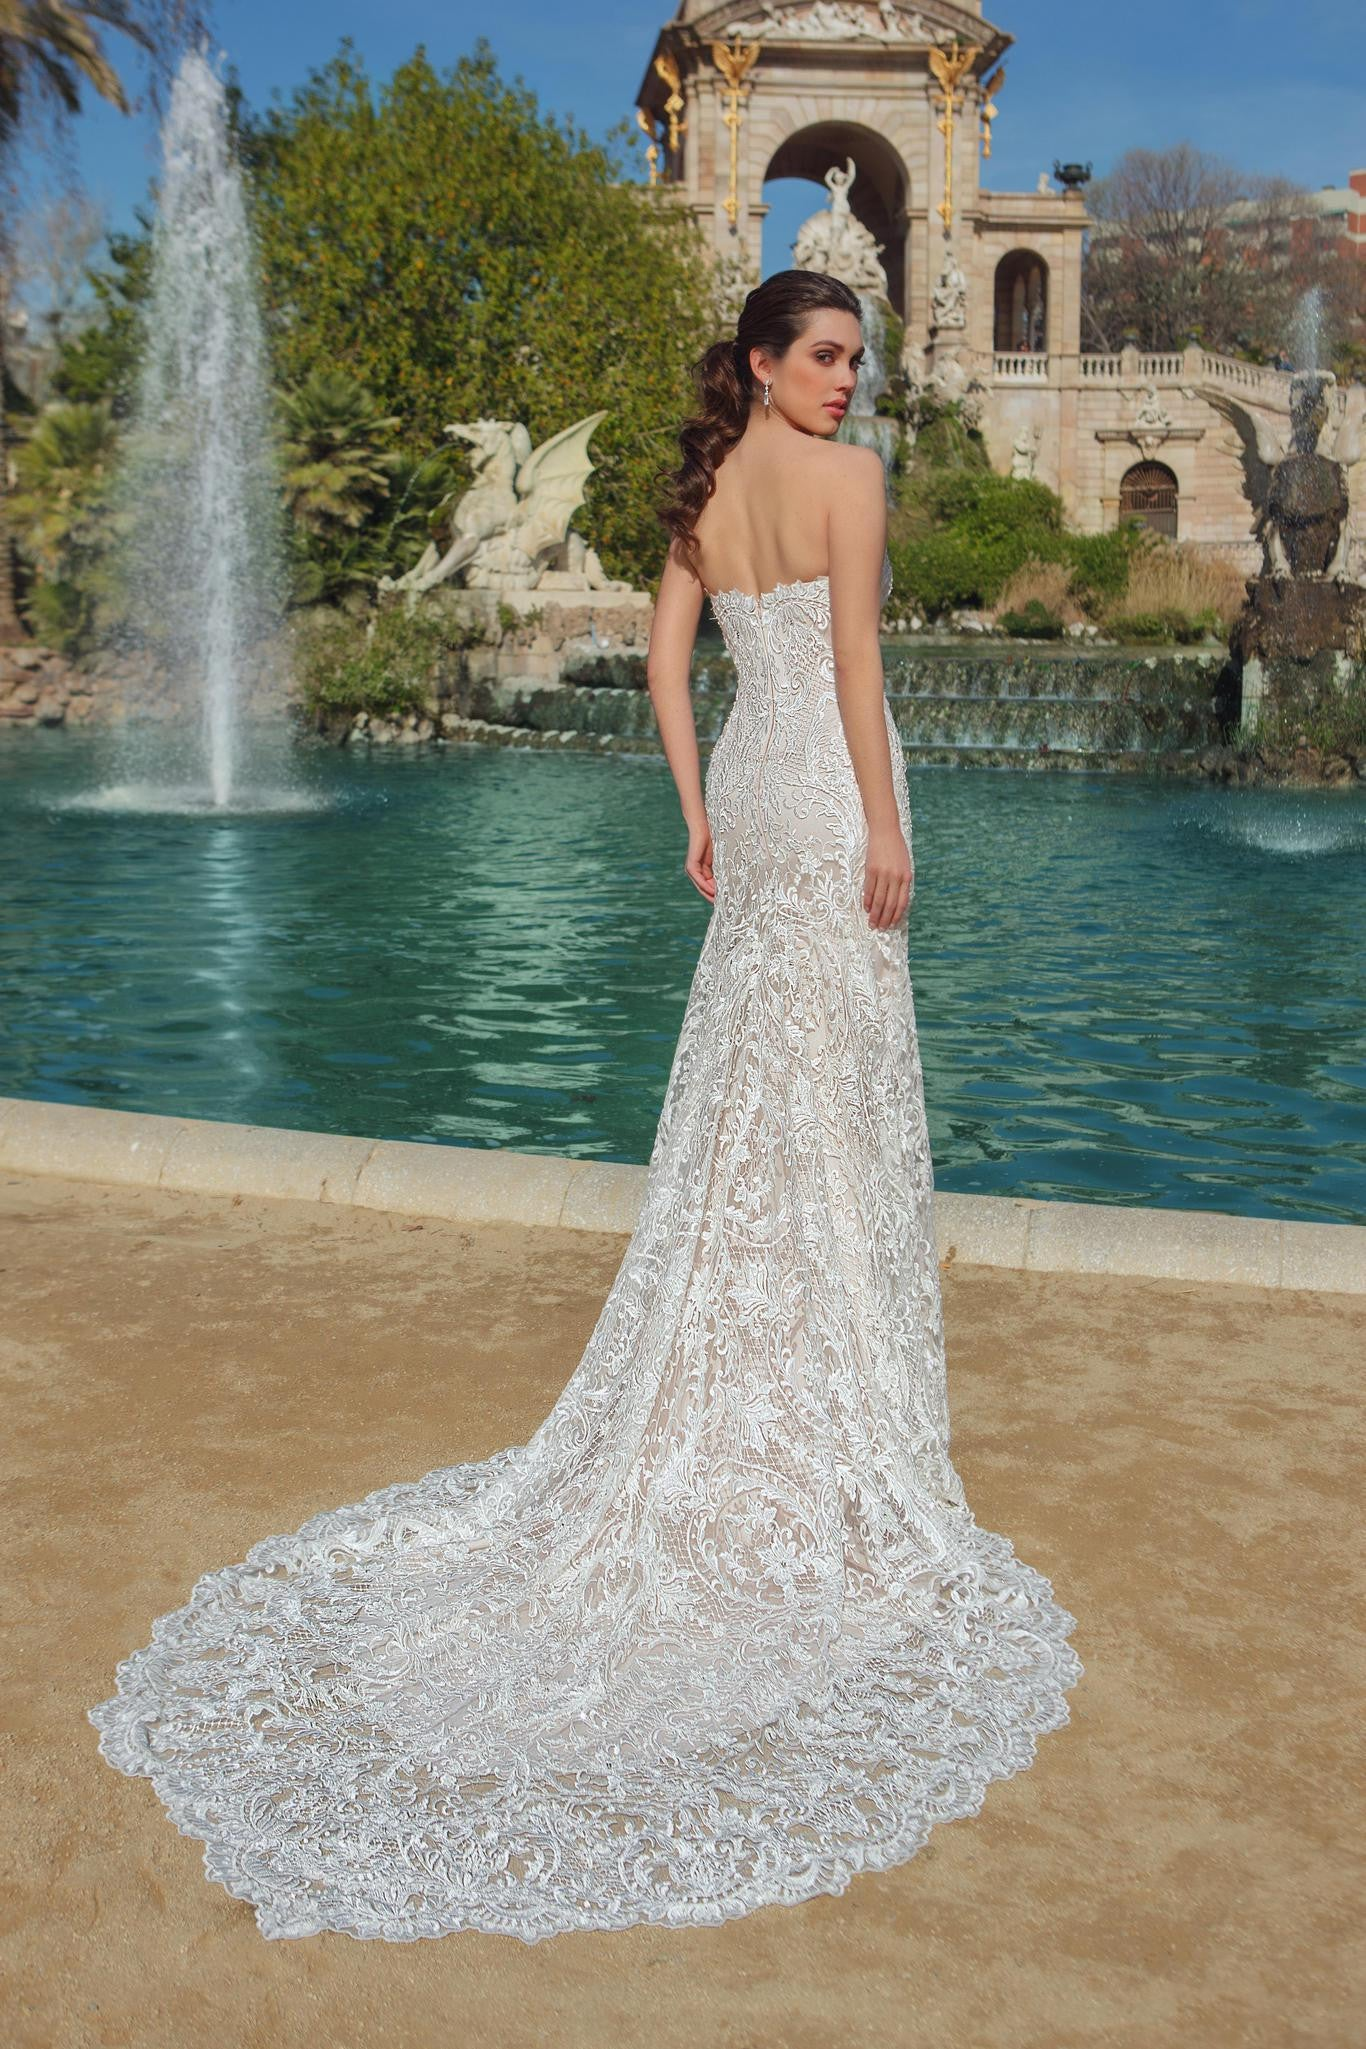 Strapless Sweetheart Lace Column Wedding Gown – The Magic of Chic